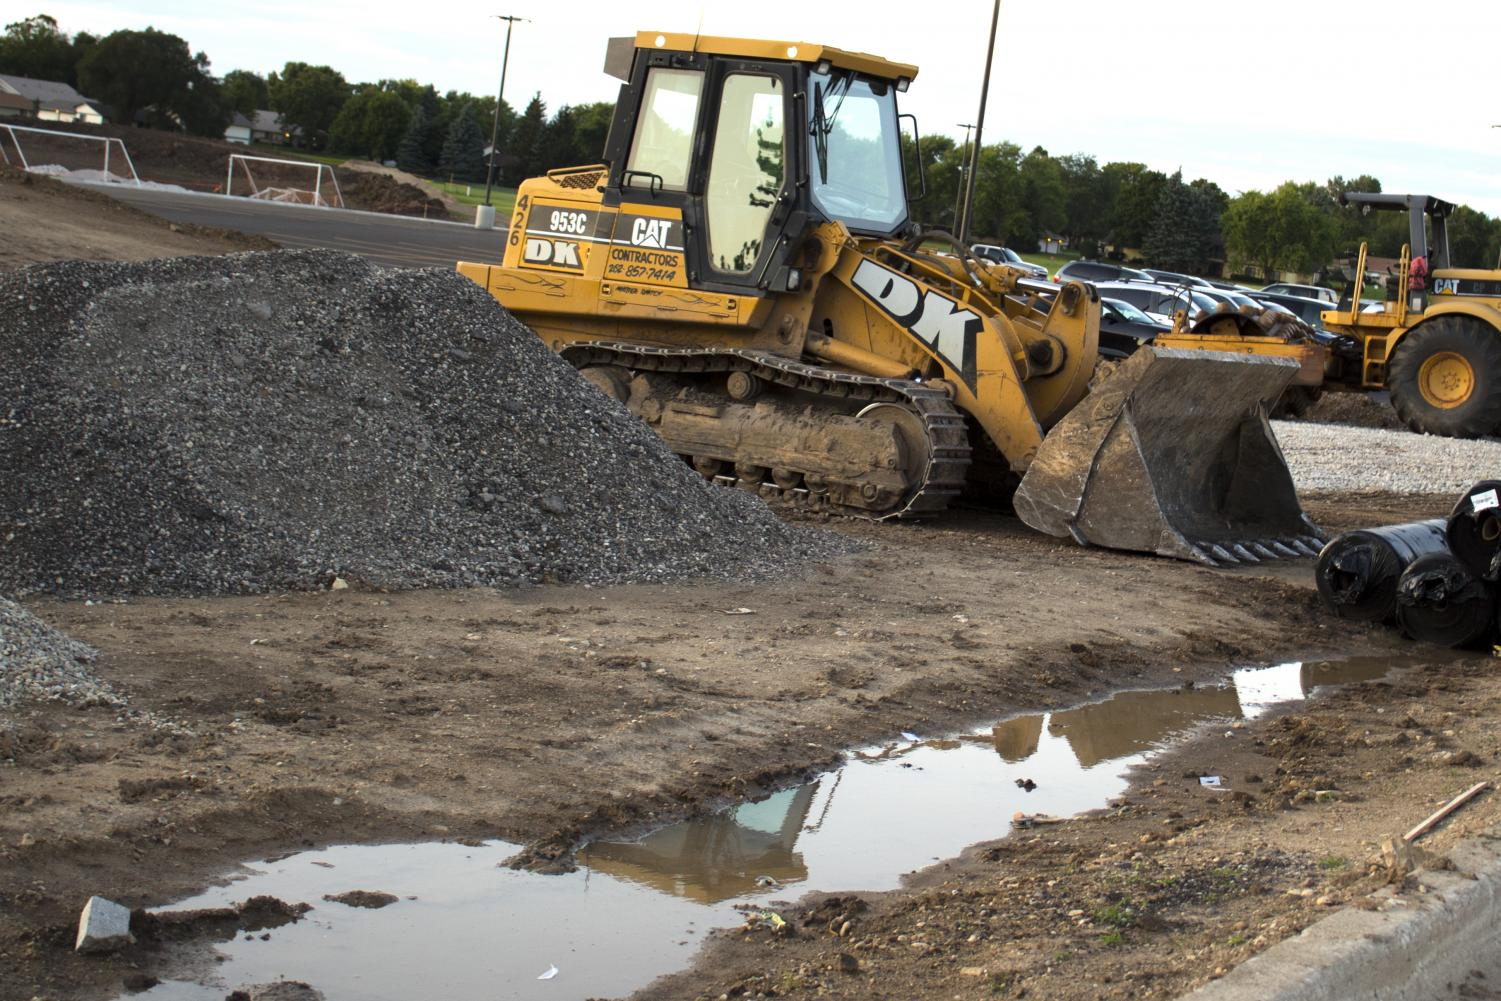 Construction equipment sits idle beside a mud pit in late August where the district hopes 10 new tennis courts will be constructed before winter